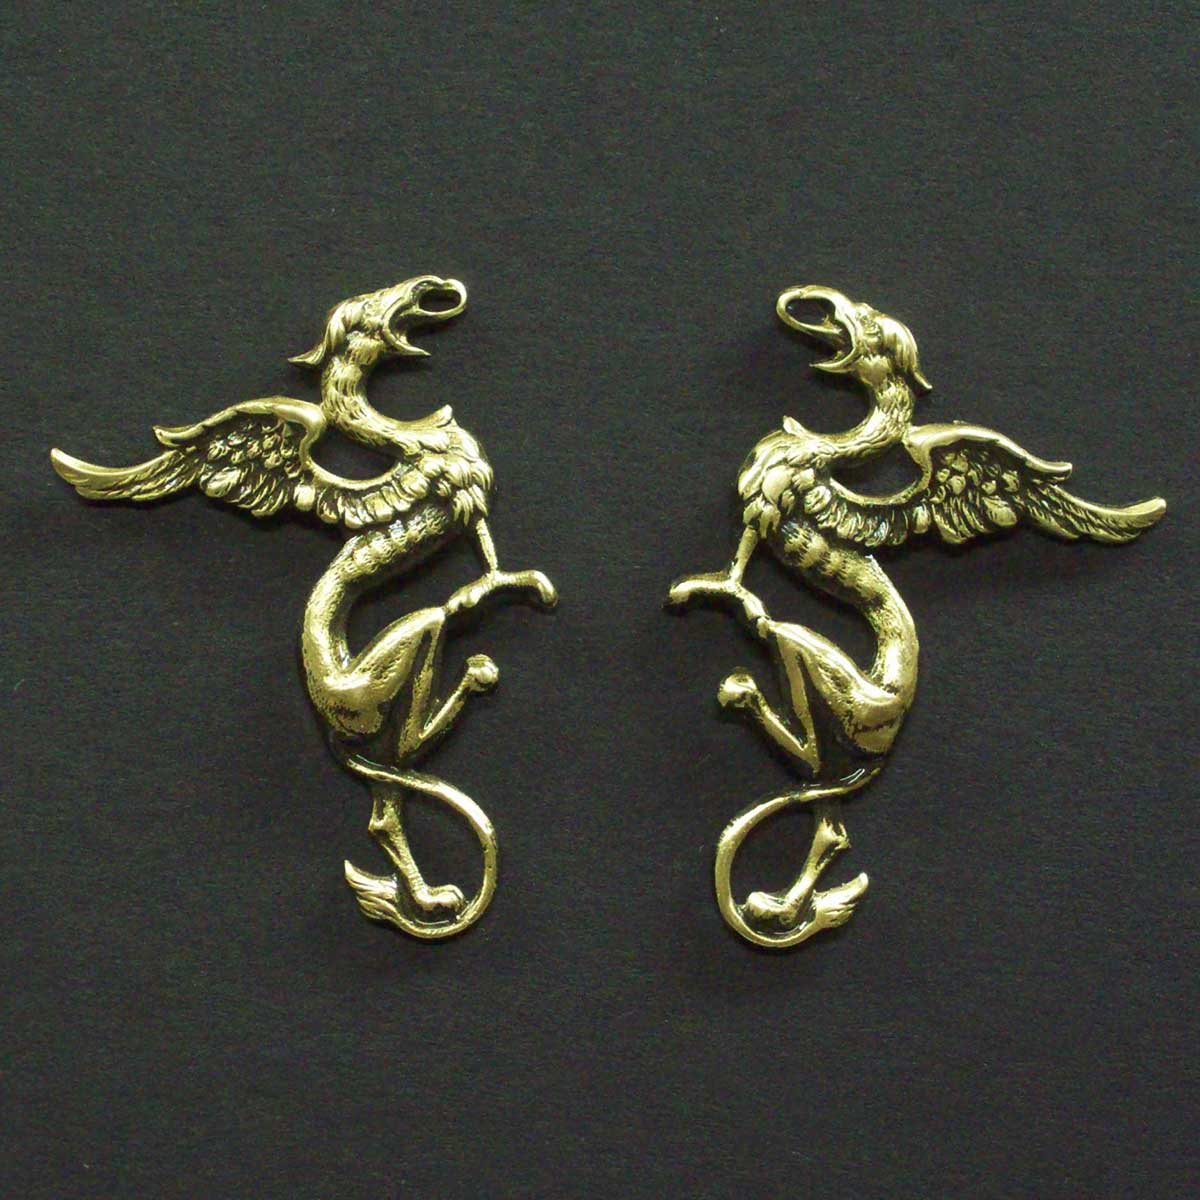 Tall Dragon Earrings Post